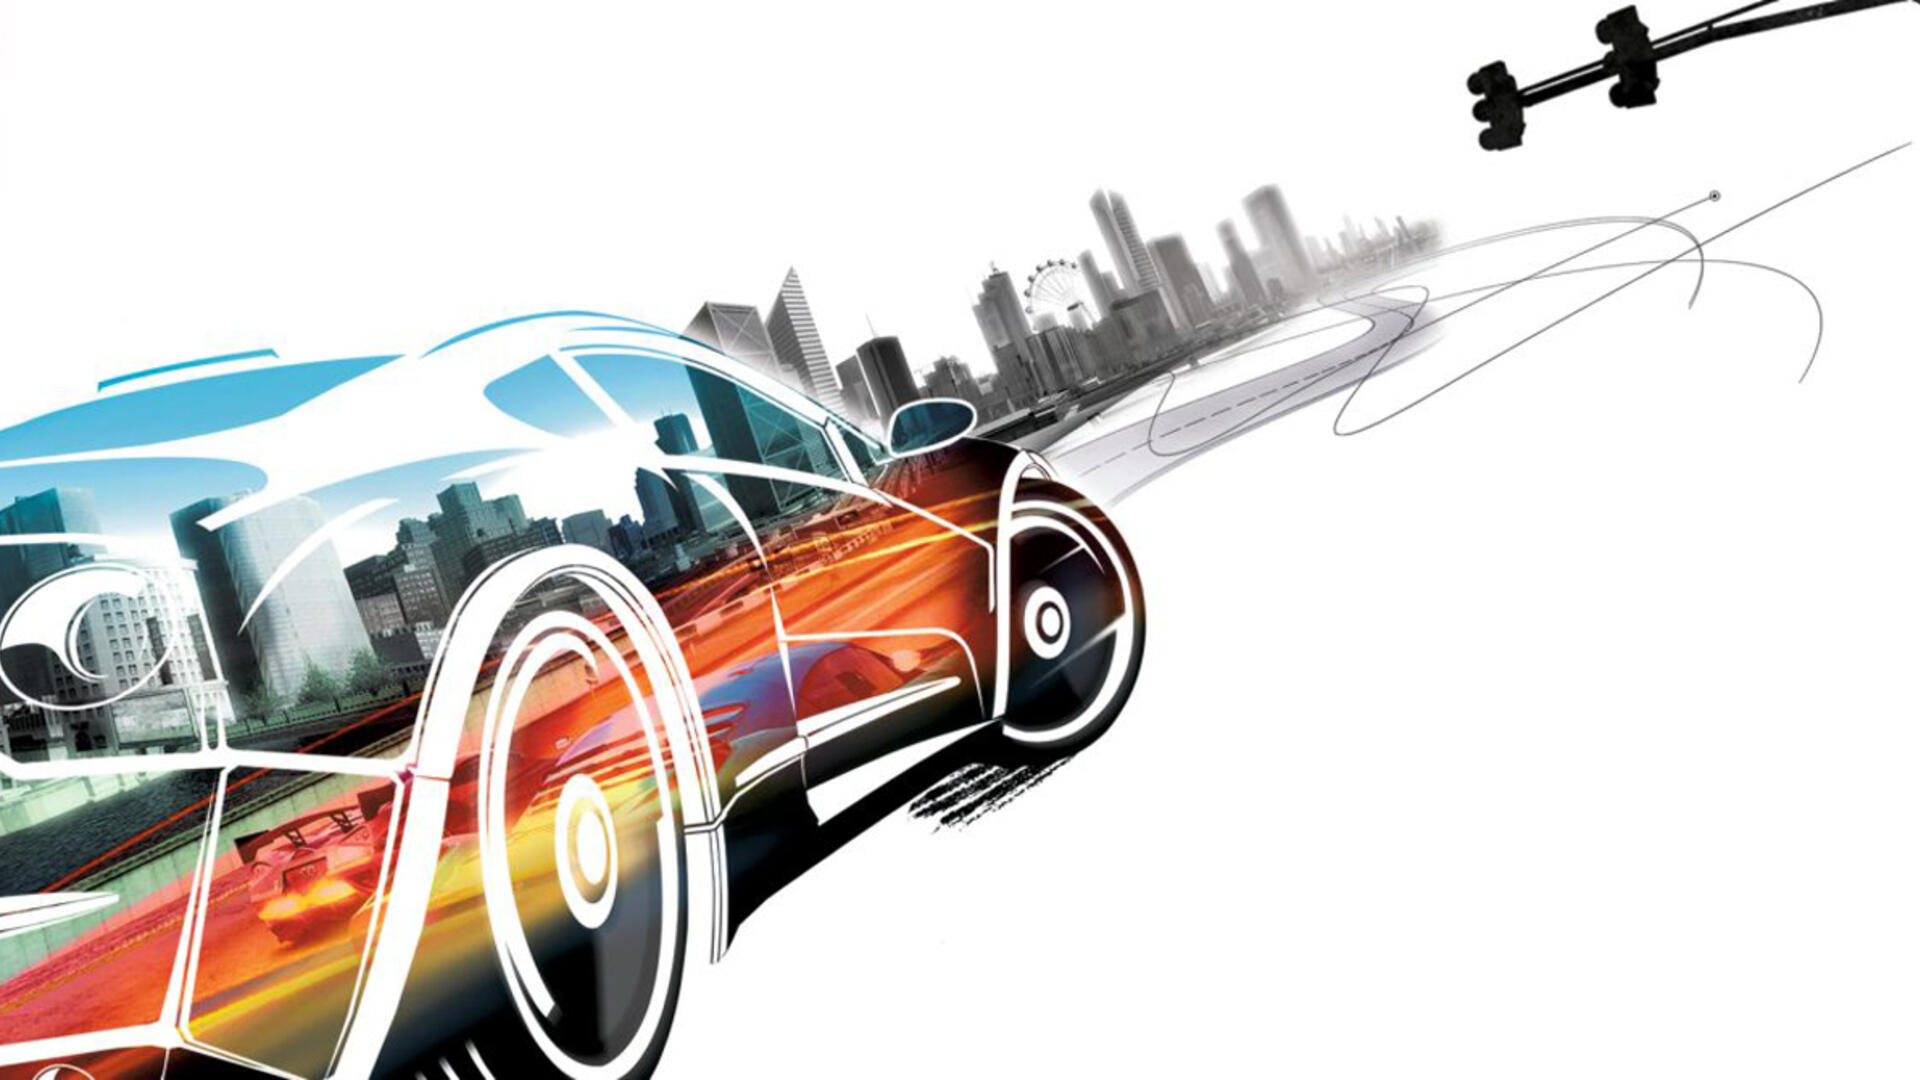 Burnout Paradise 10th Anniversary: Remembering Criterion's Race